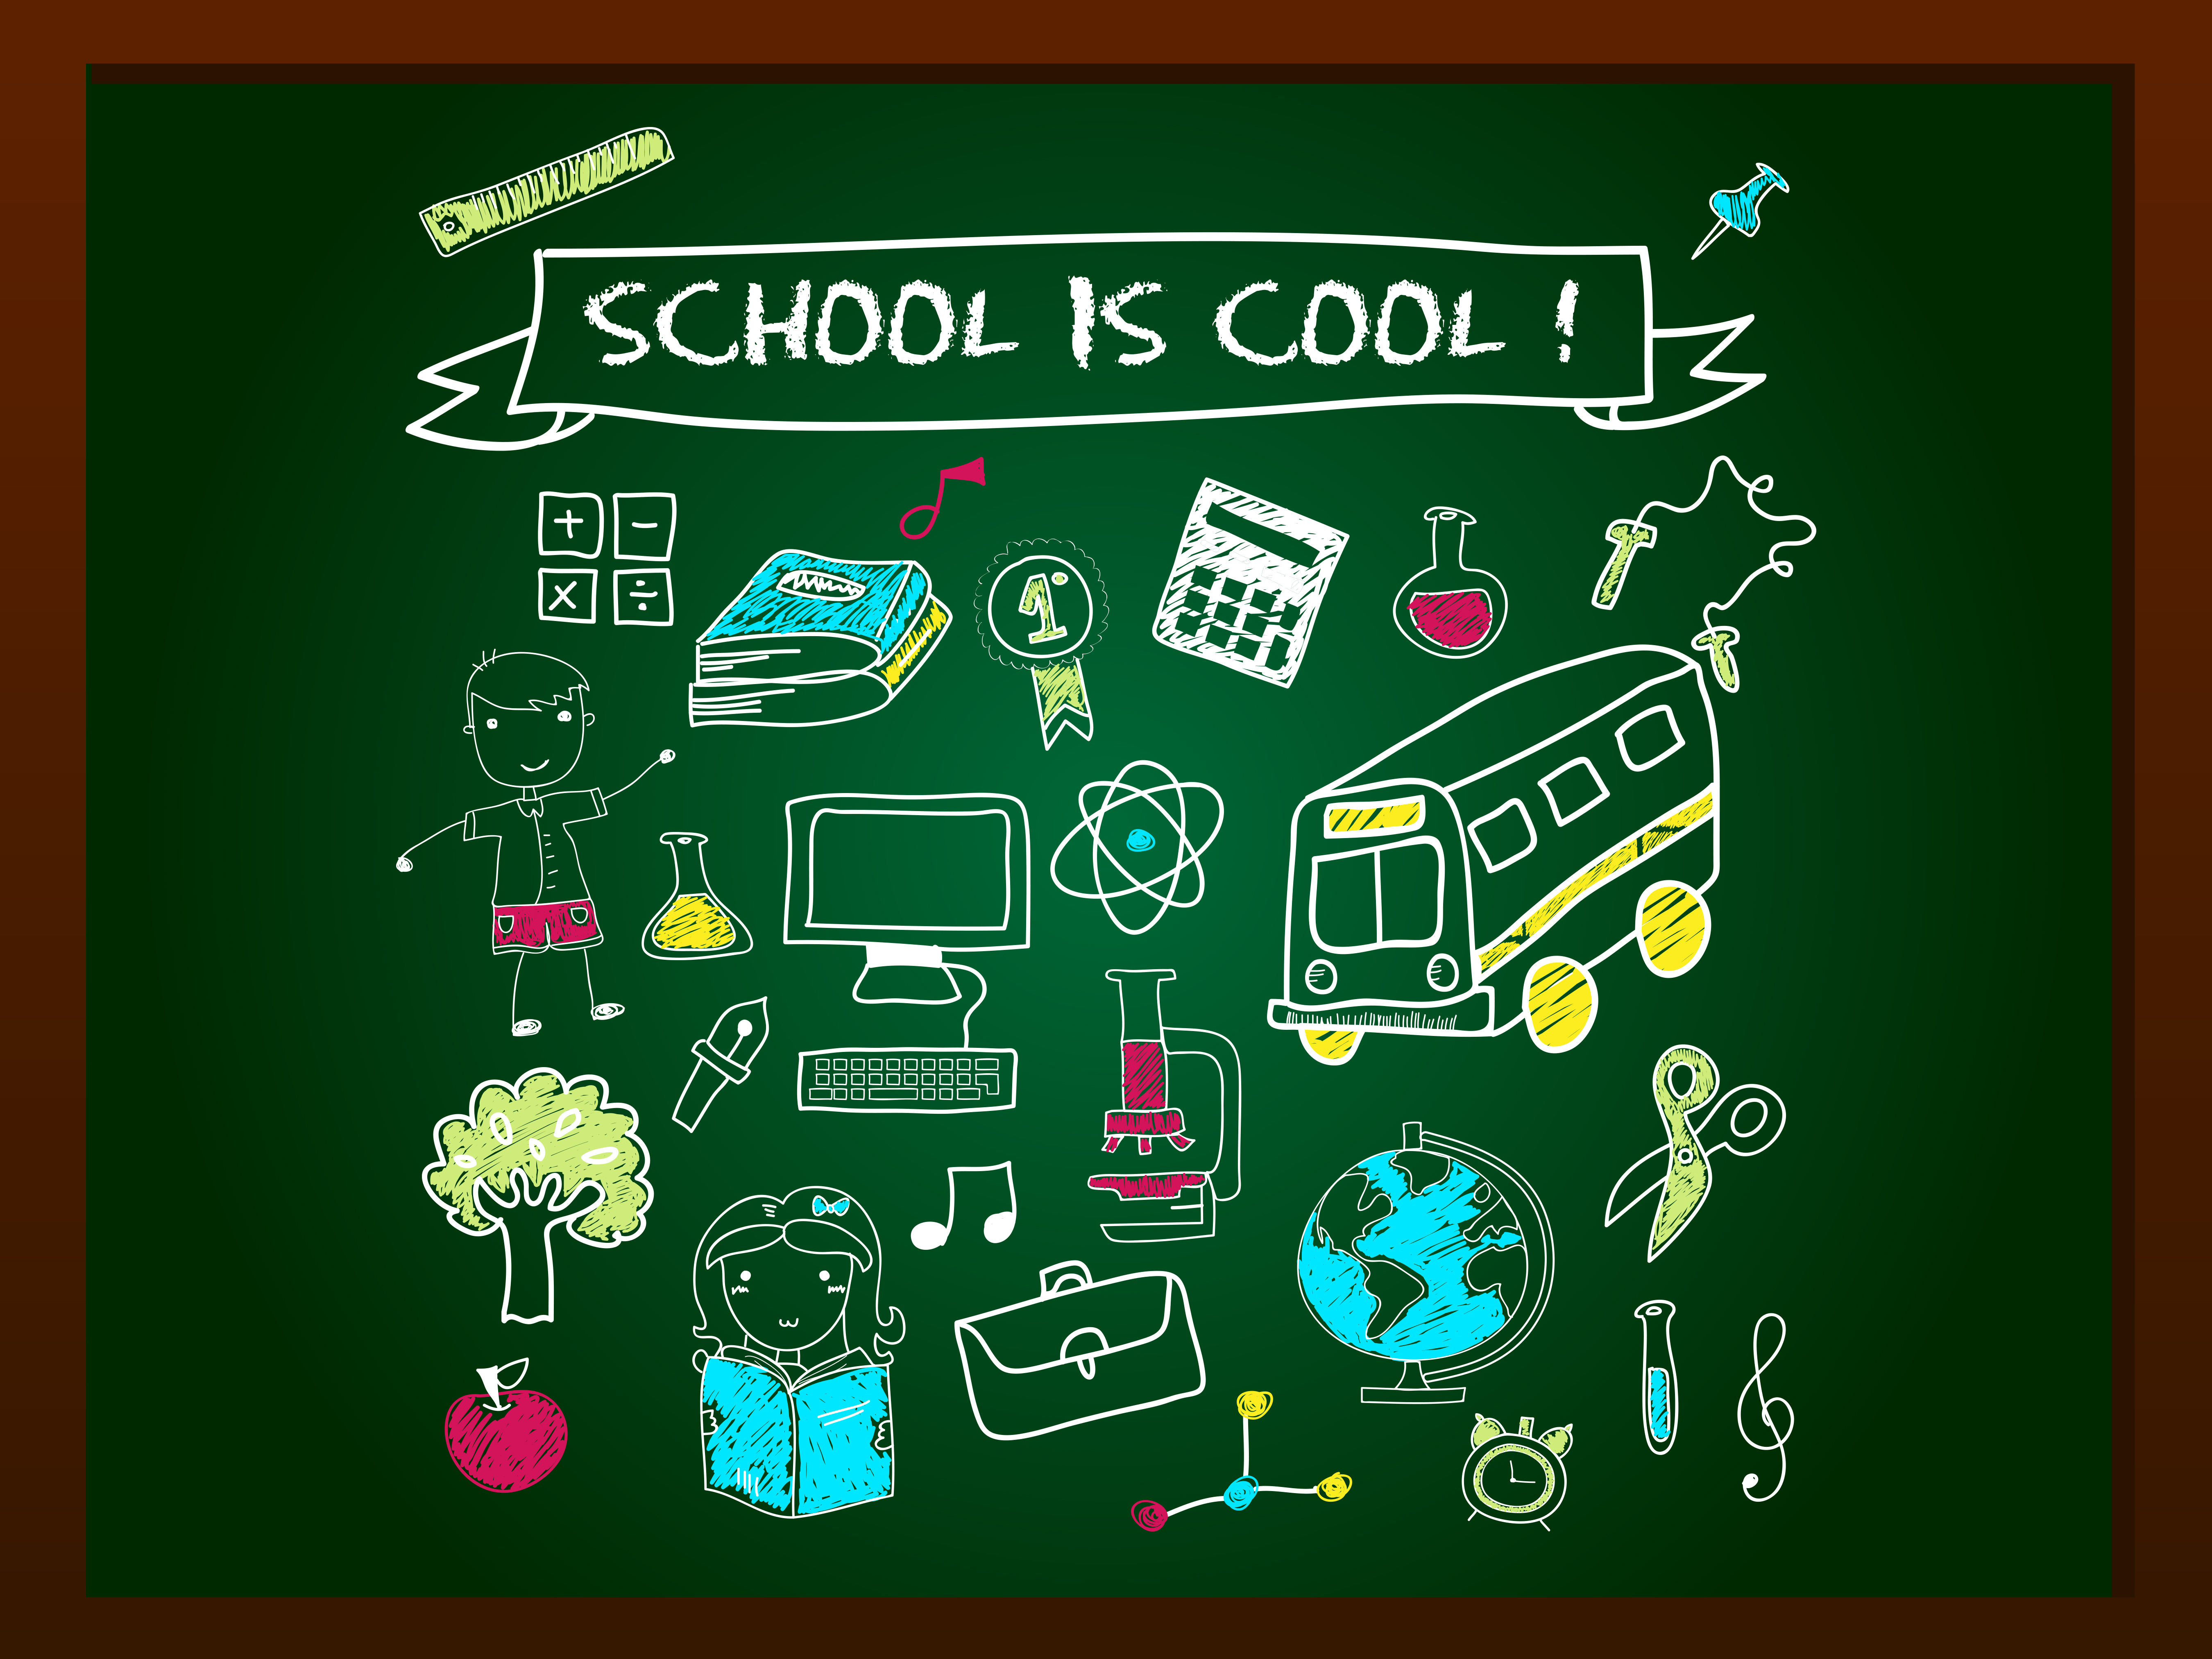 School-Wallpaper-TJD22